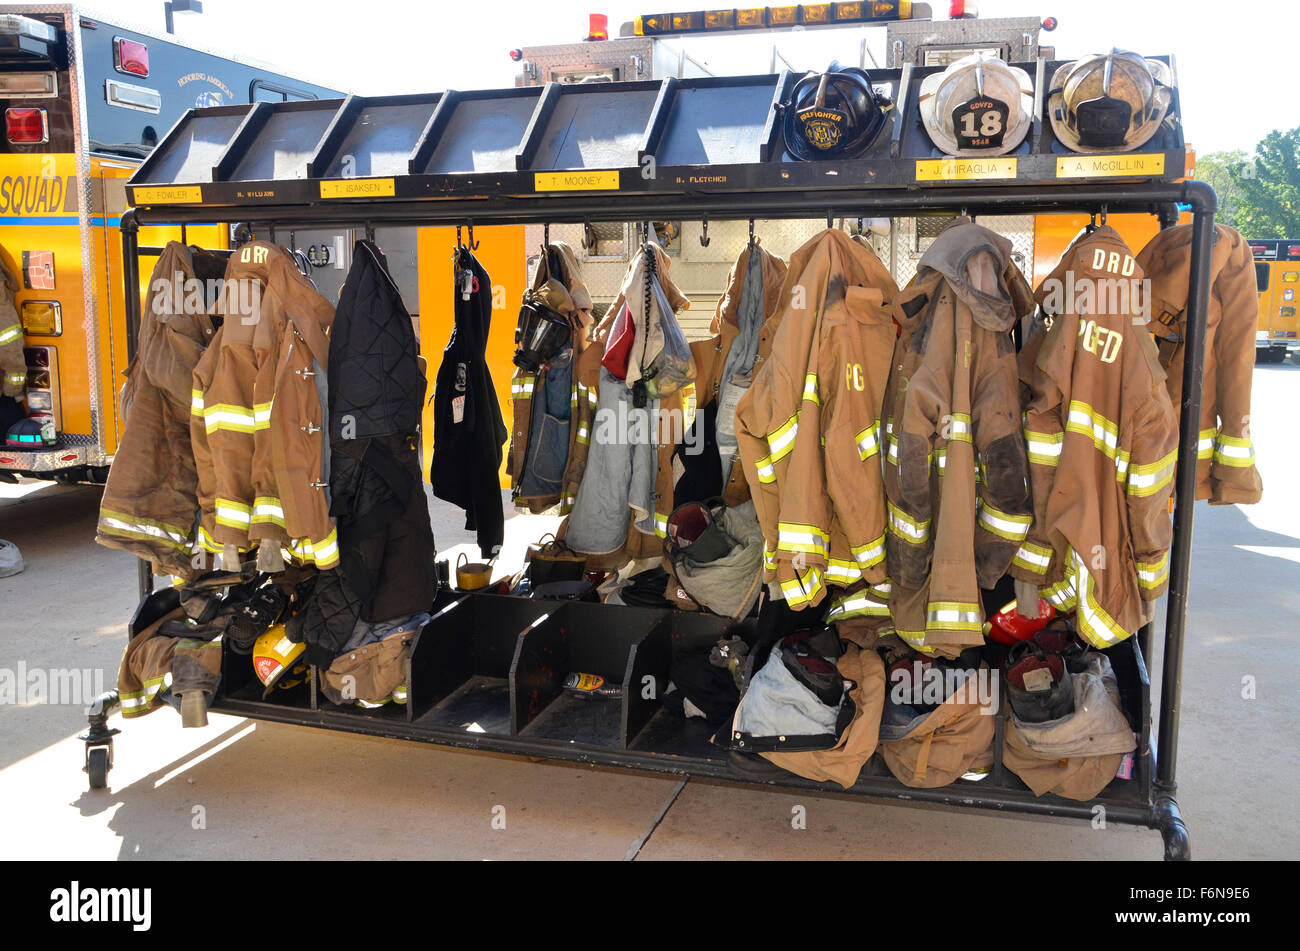 firefighters turnout gear hanging on racks - Stock Image